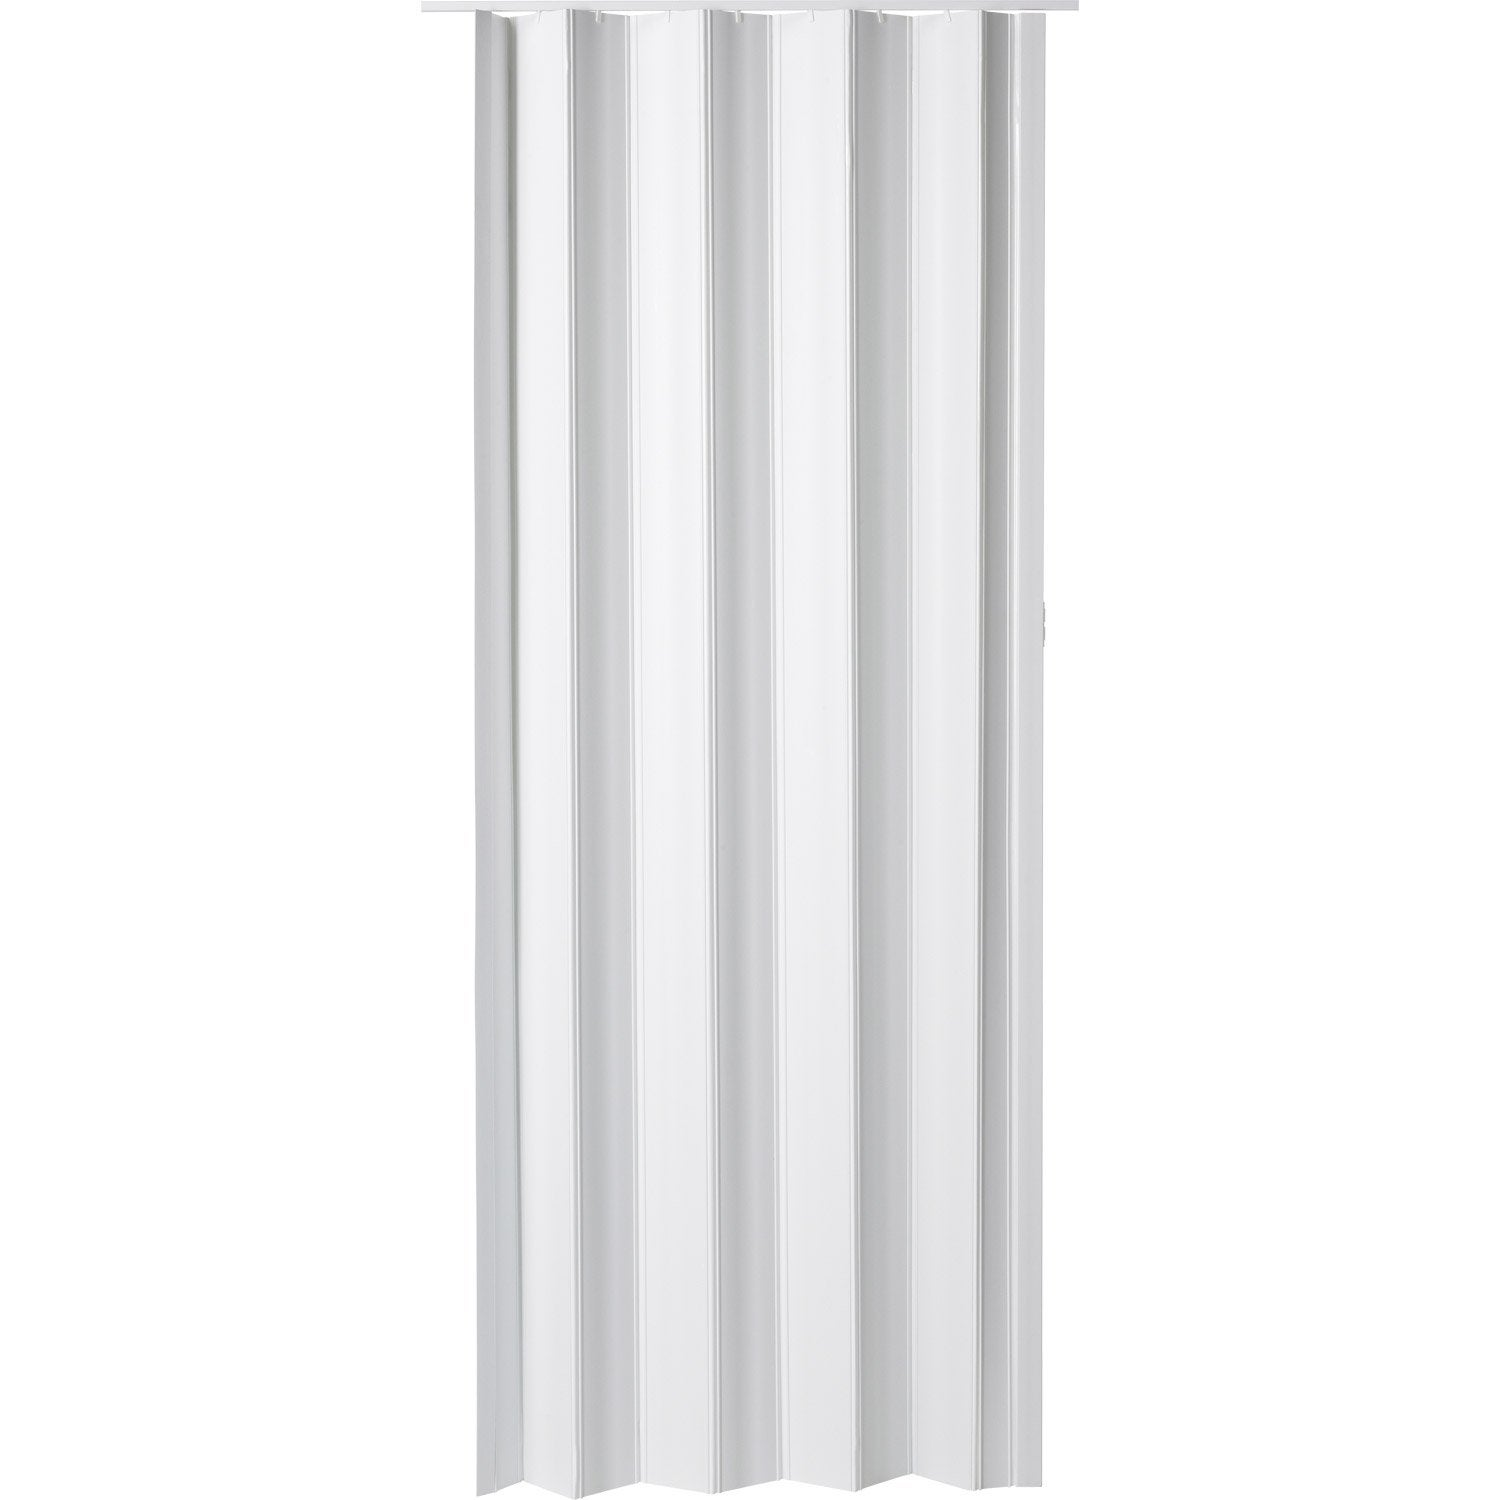 Porte accord on eco en r sine de synth se blanc 203 x 85 cm leroy merlin - Portes accordeons leroy merlin ...